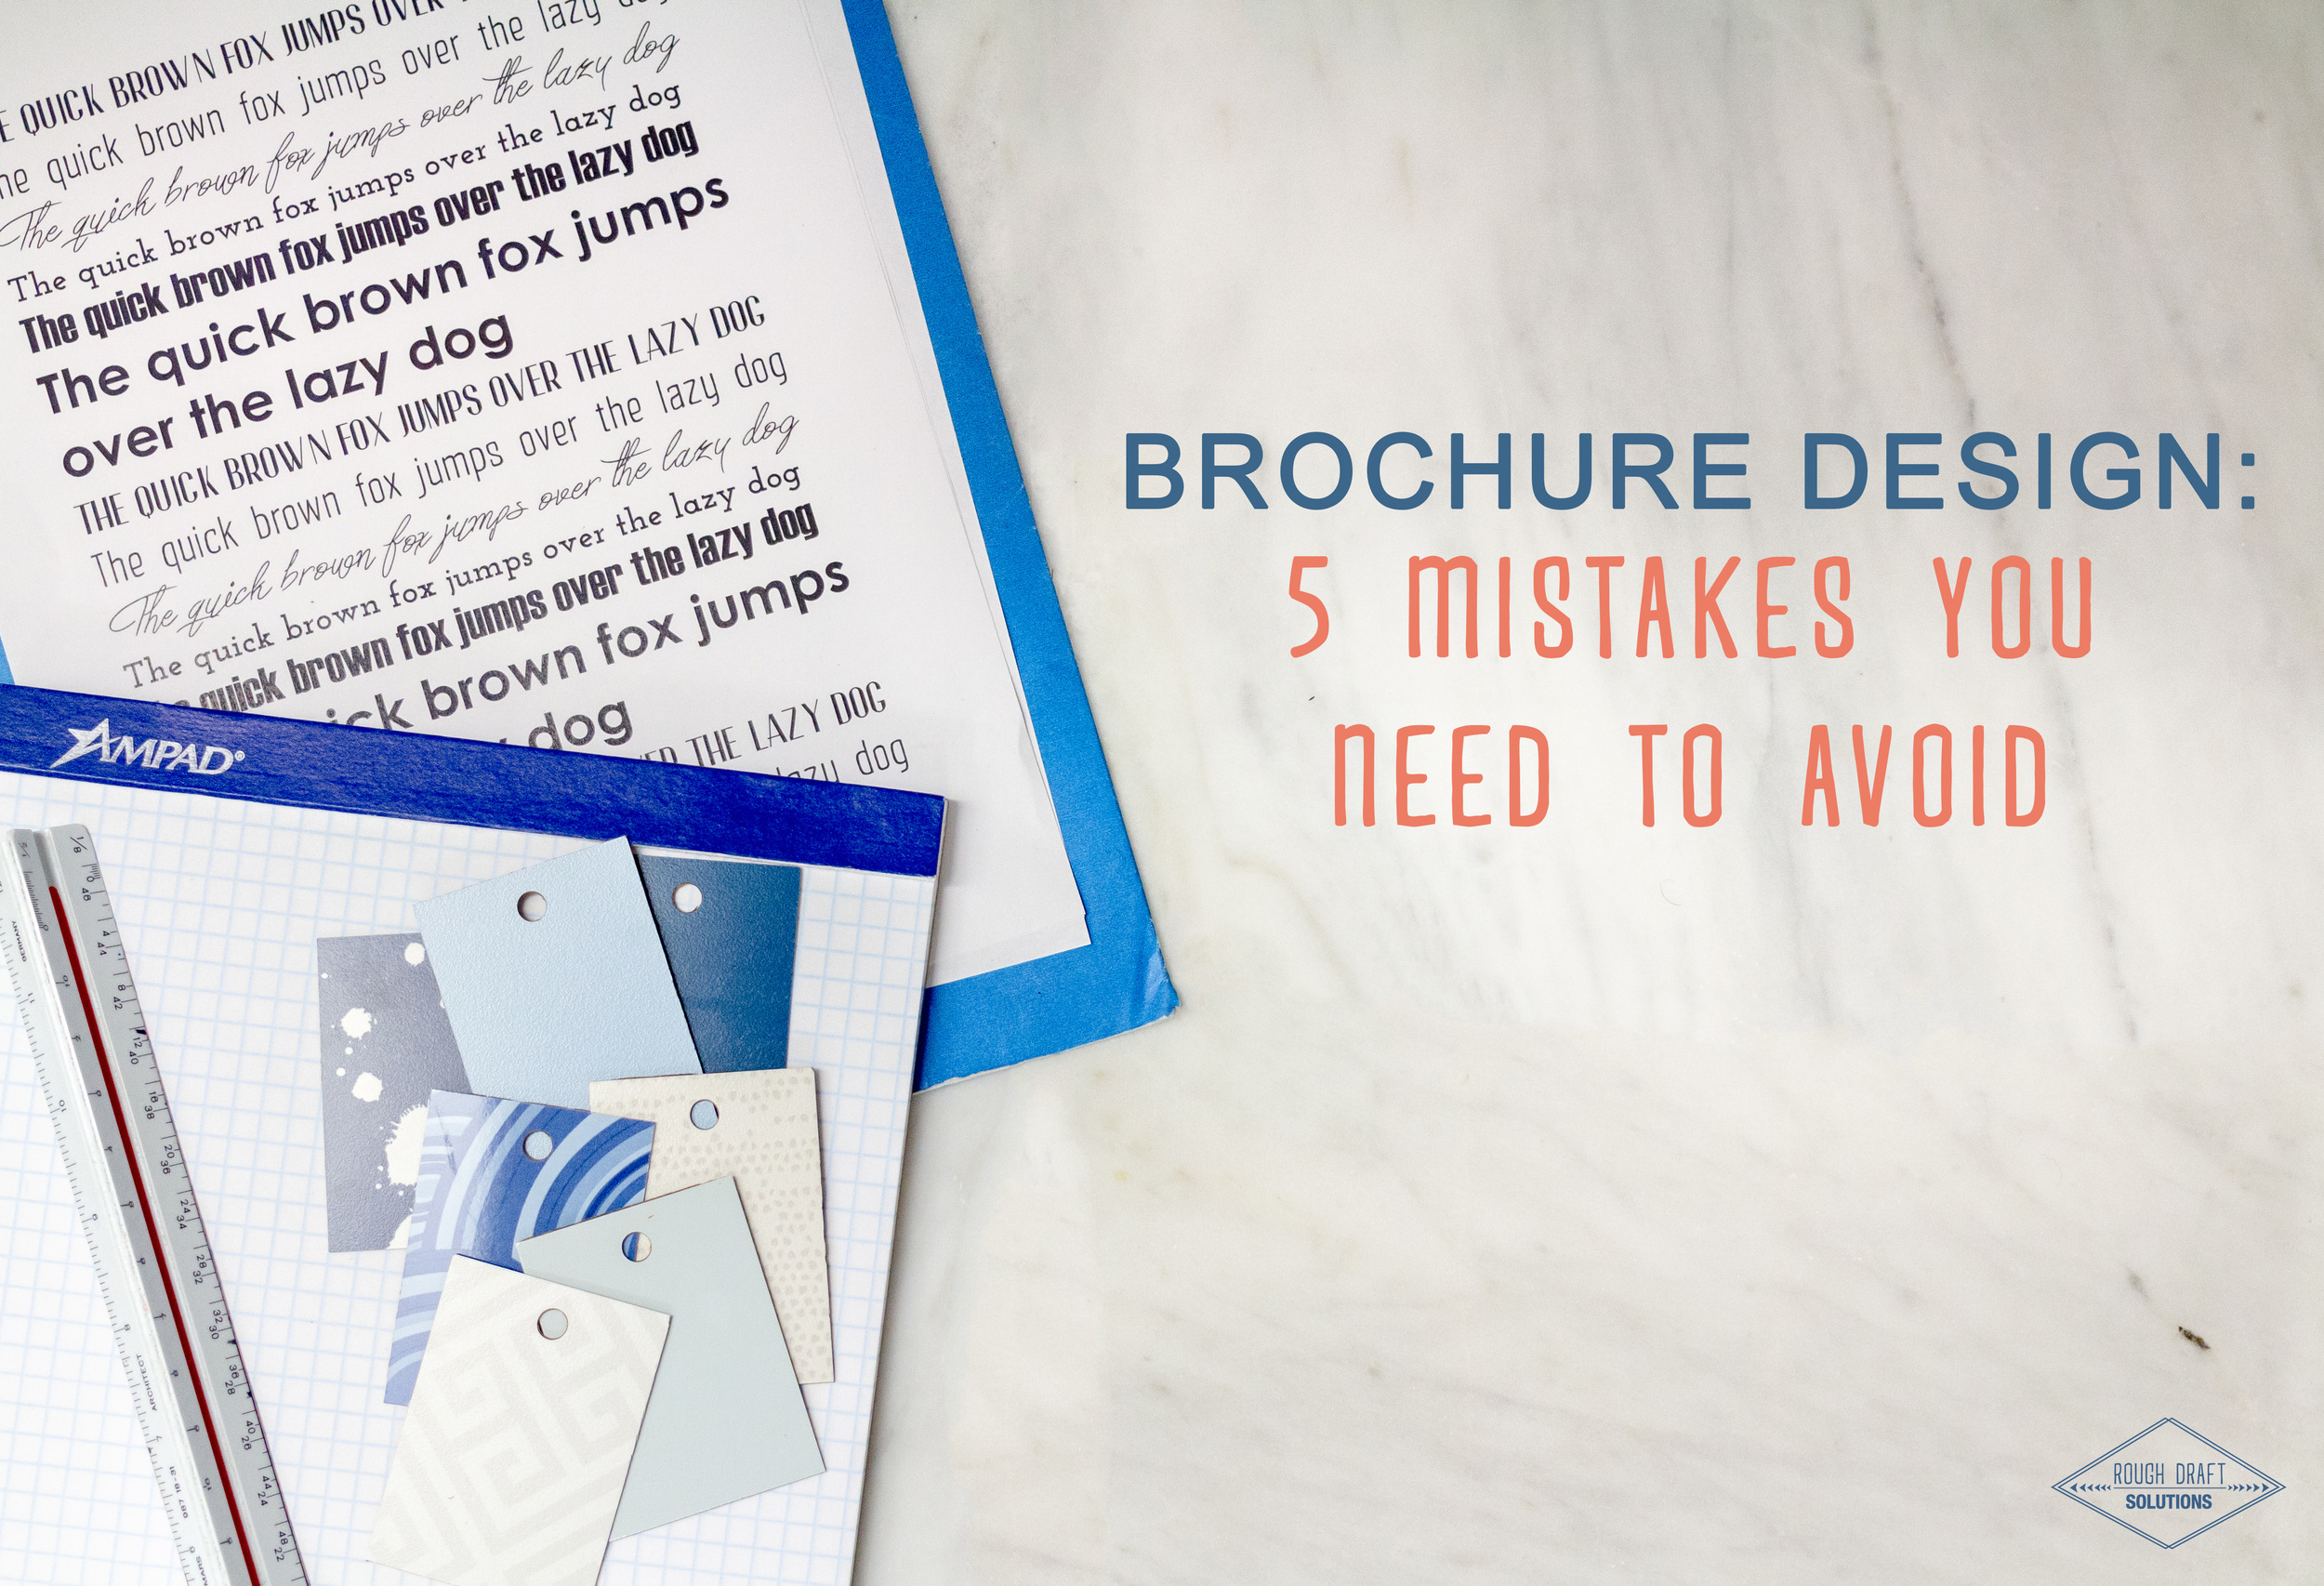 Brochure Design: 5 Mistakes You Need to Avoid